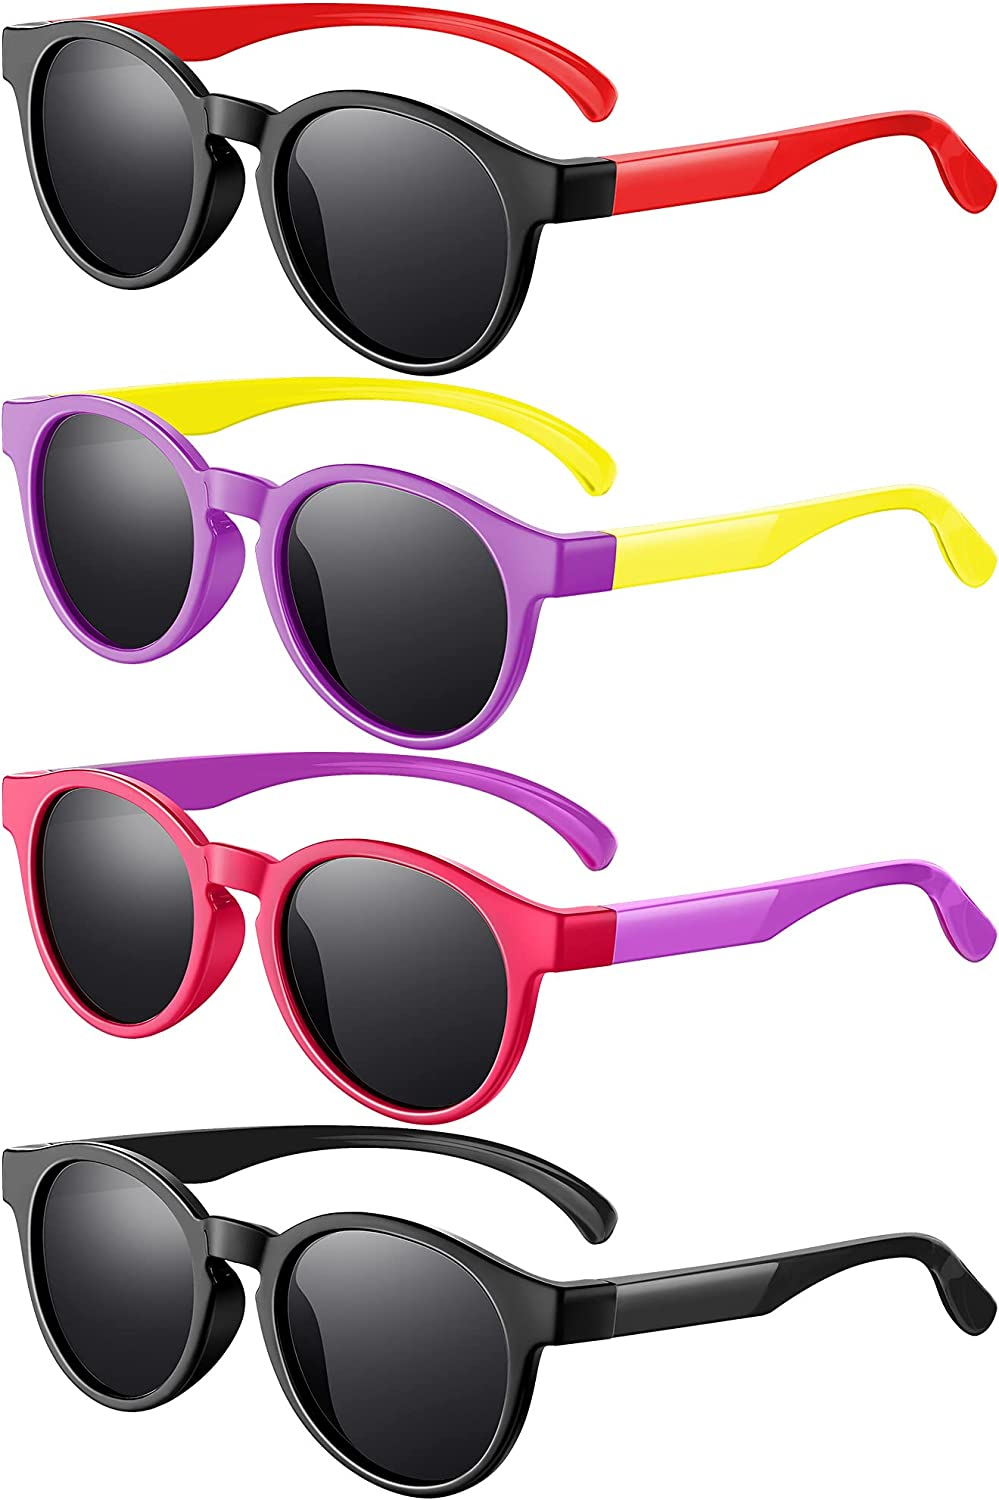 4 Pairs Kids Polarized Sunglasses Sunglasse Max 81% OFF At the price Flexible TPEE Rubber